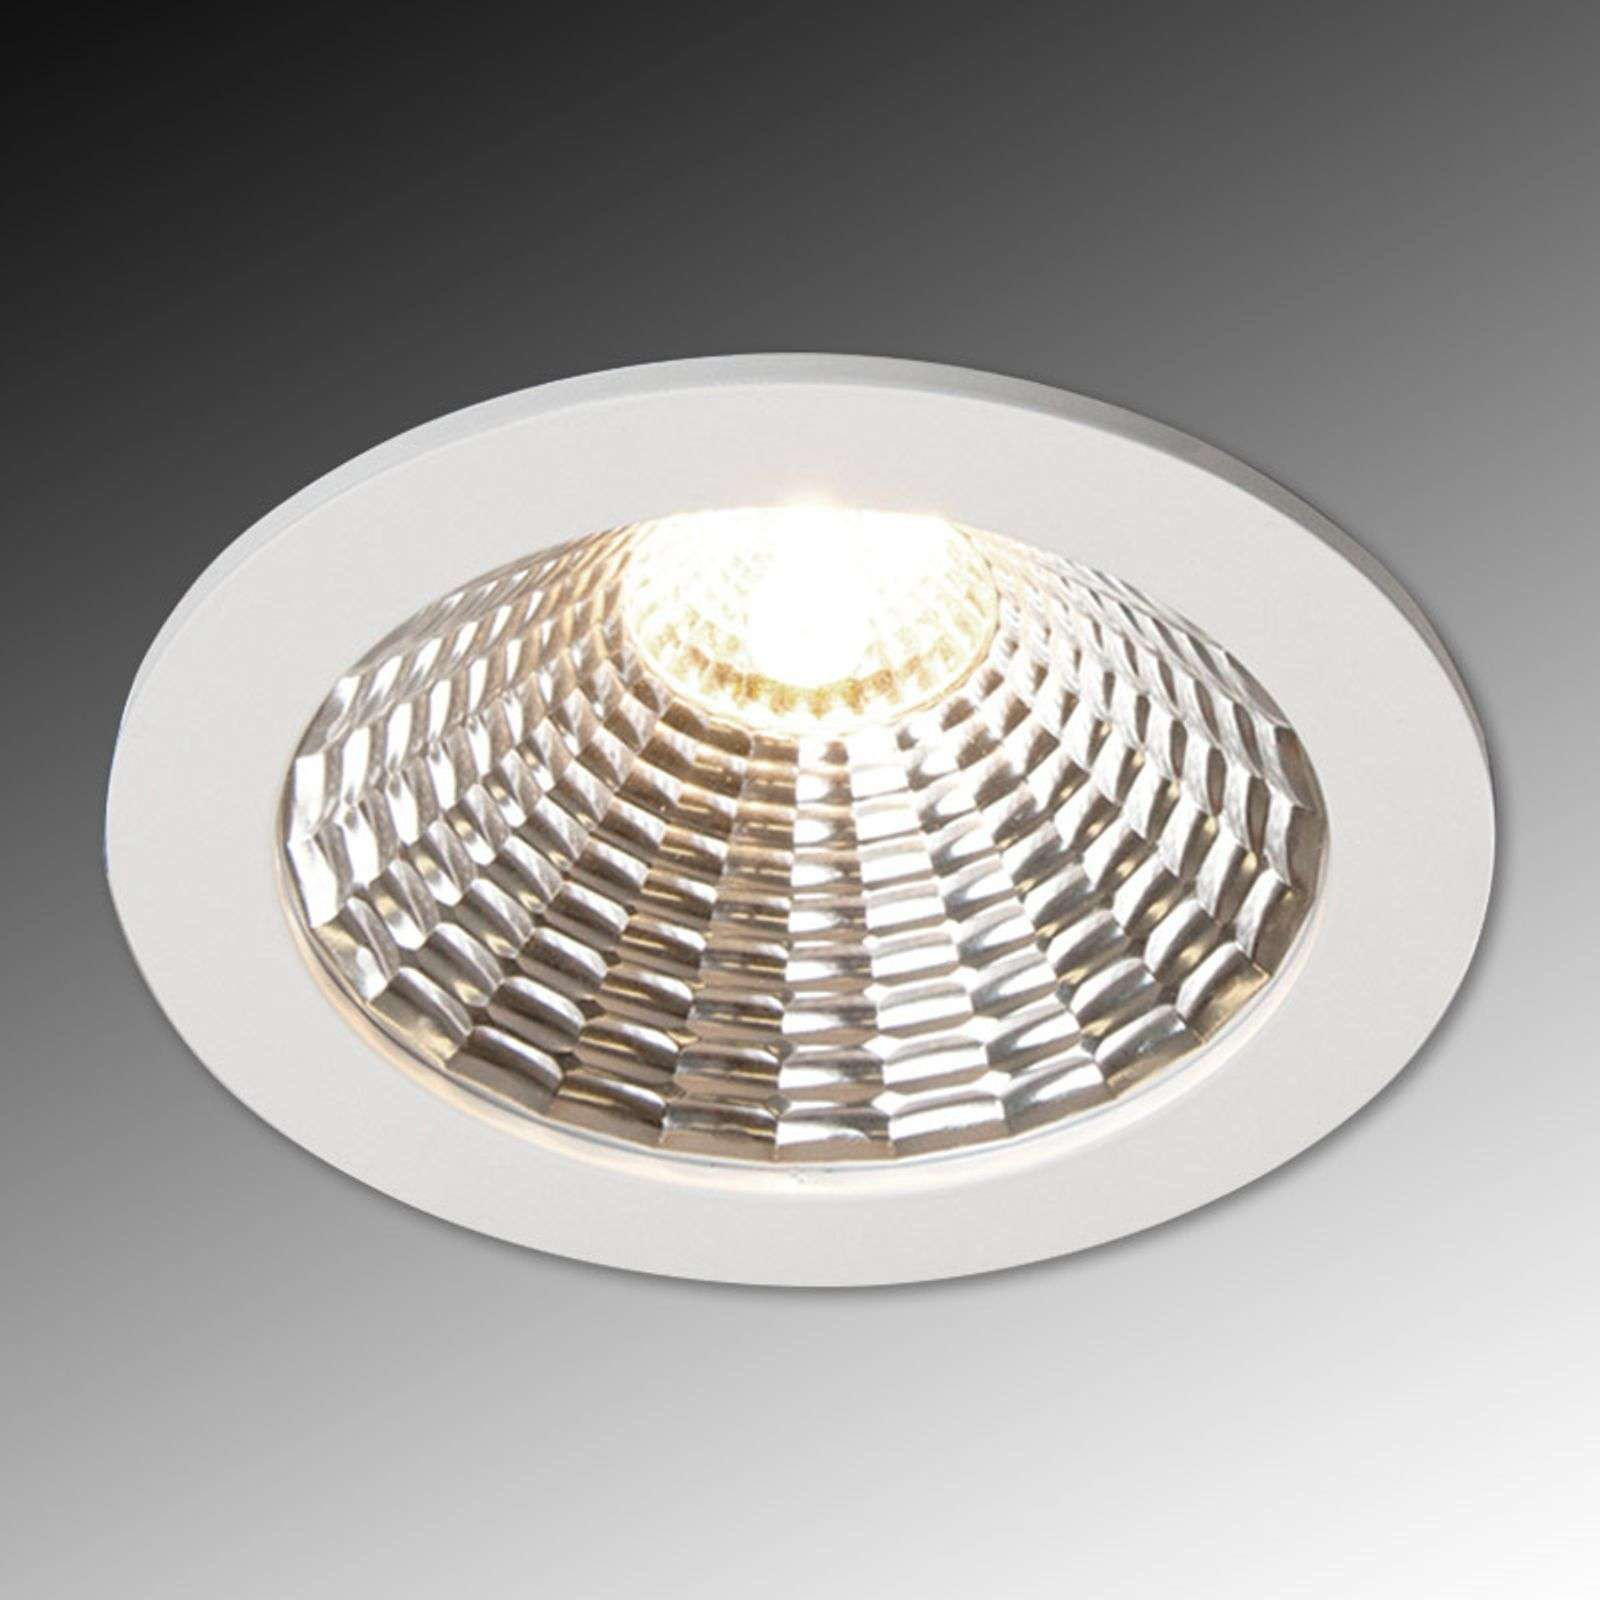 Spot encastrable LED DR155 17W blanc univer 4000 K